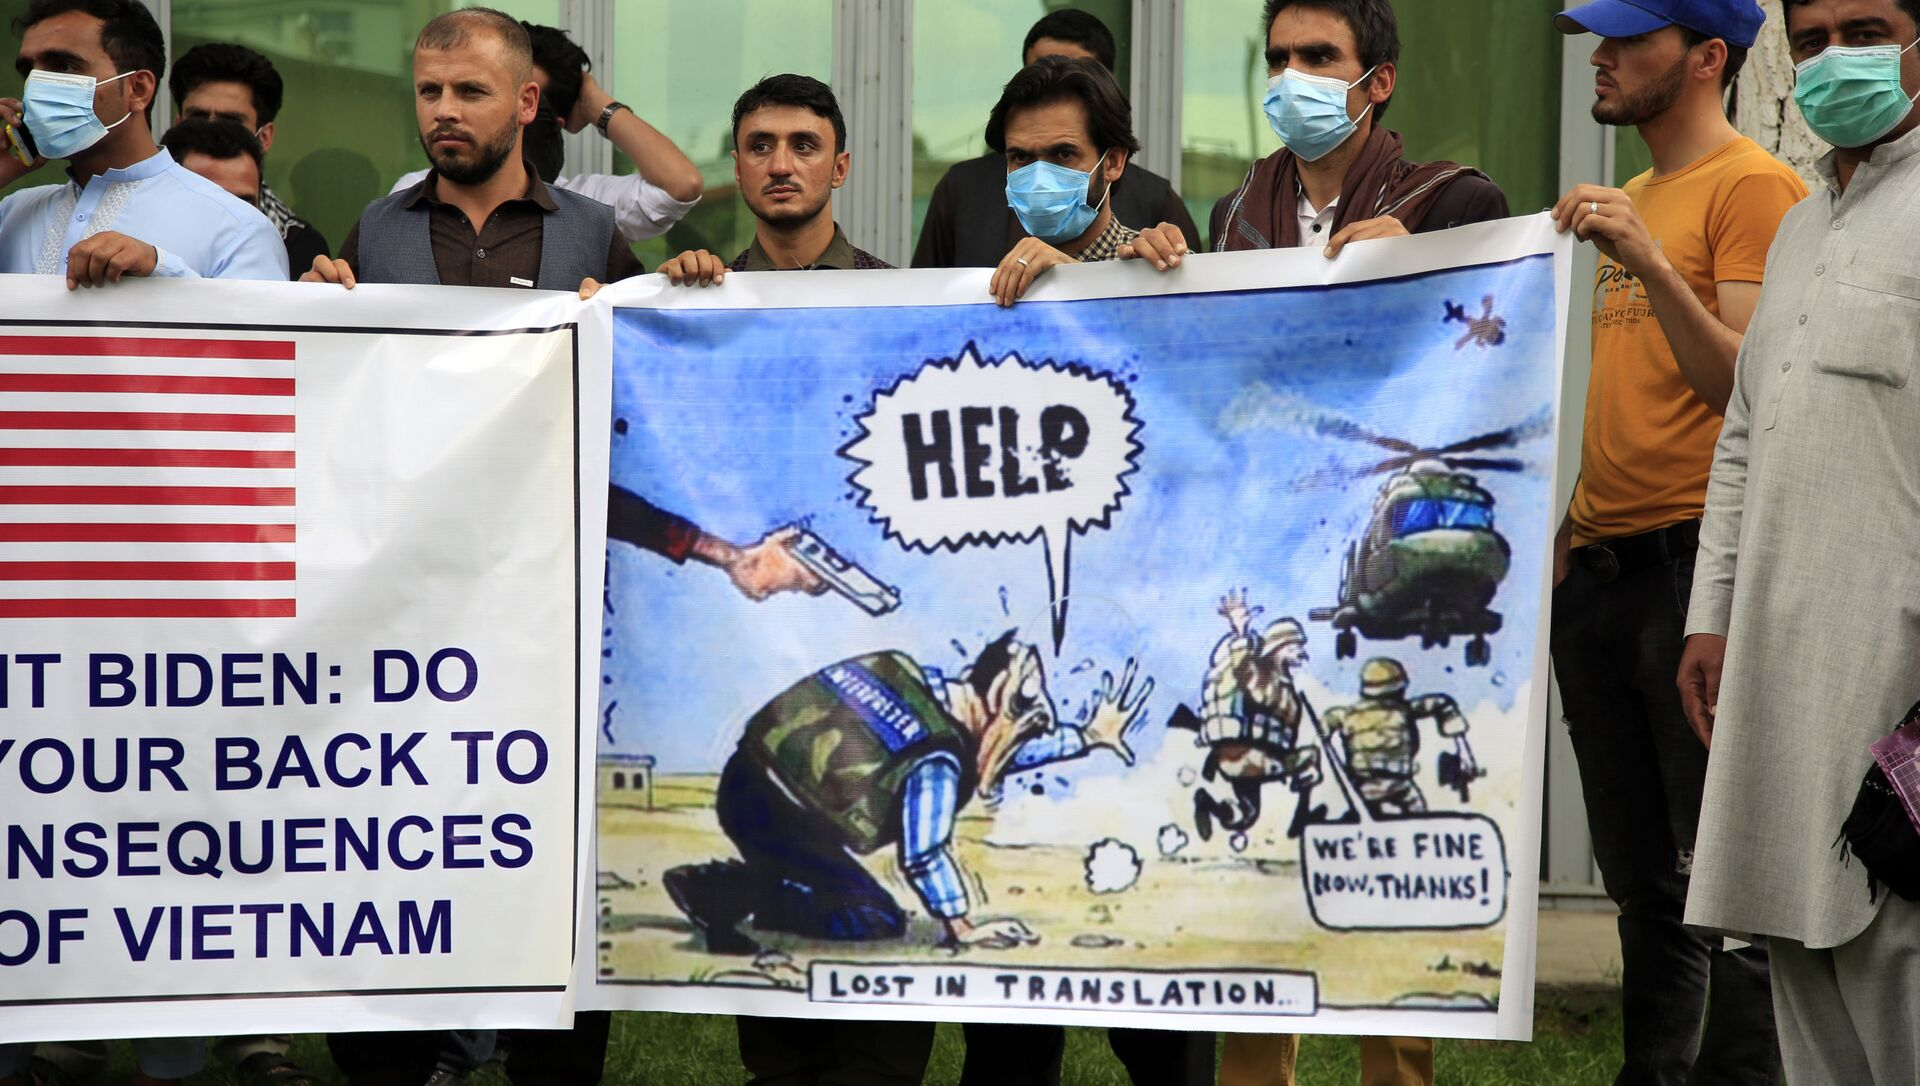 In this Friday, April 30, 2021, file photo former Afghan interpreters hold banners during a protest against the U.S. government and NATO in Kabul, Afghanistan. - Sputnik International, 1920, 30.07.2021